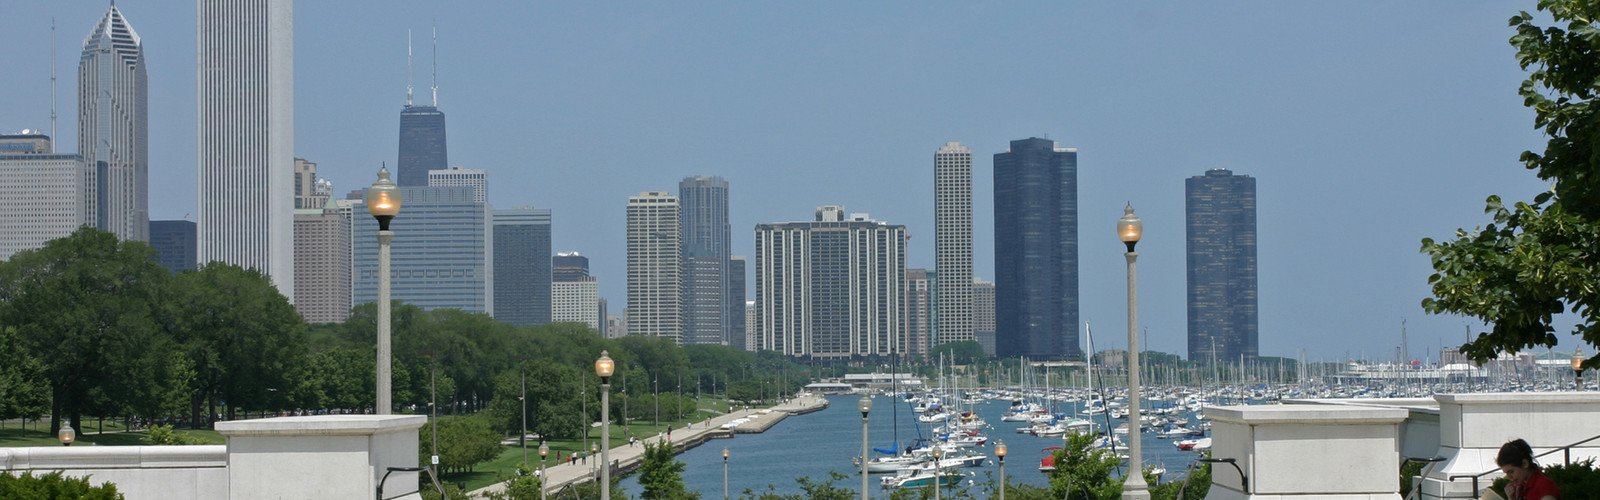 Chimniak Court Reporting and Video, Inc. in Chicago - Monroe Harbor View